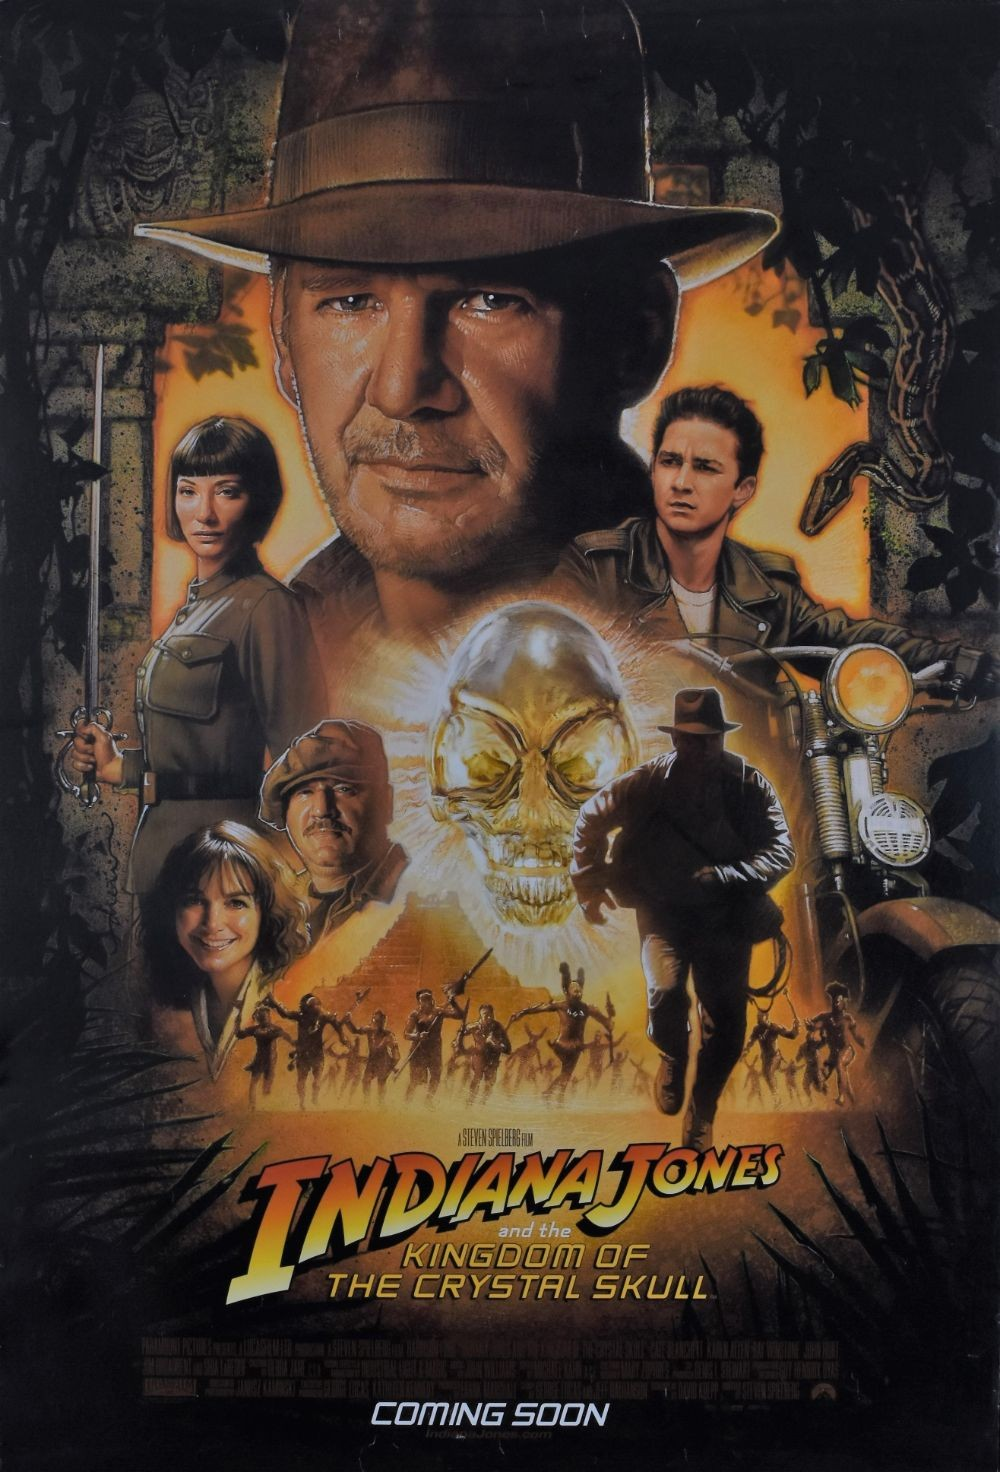 Indiana Jones and the Kingdom of the Crystal Skull original movie poster